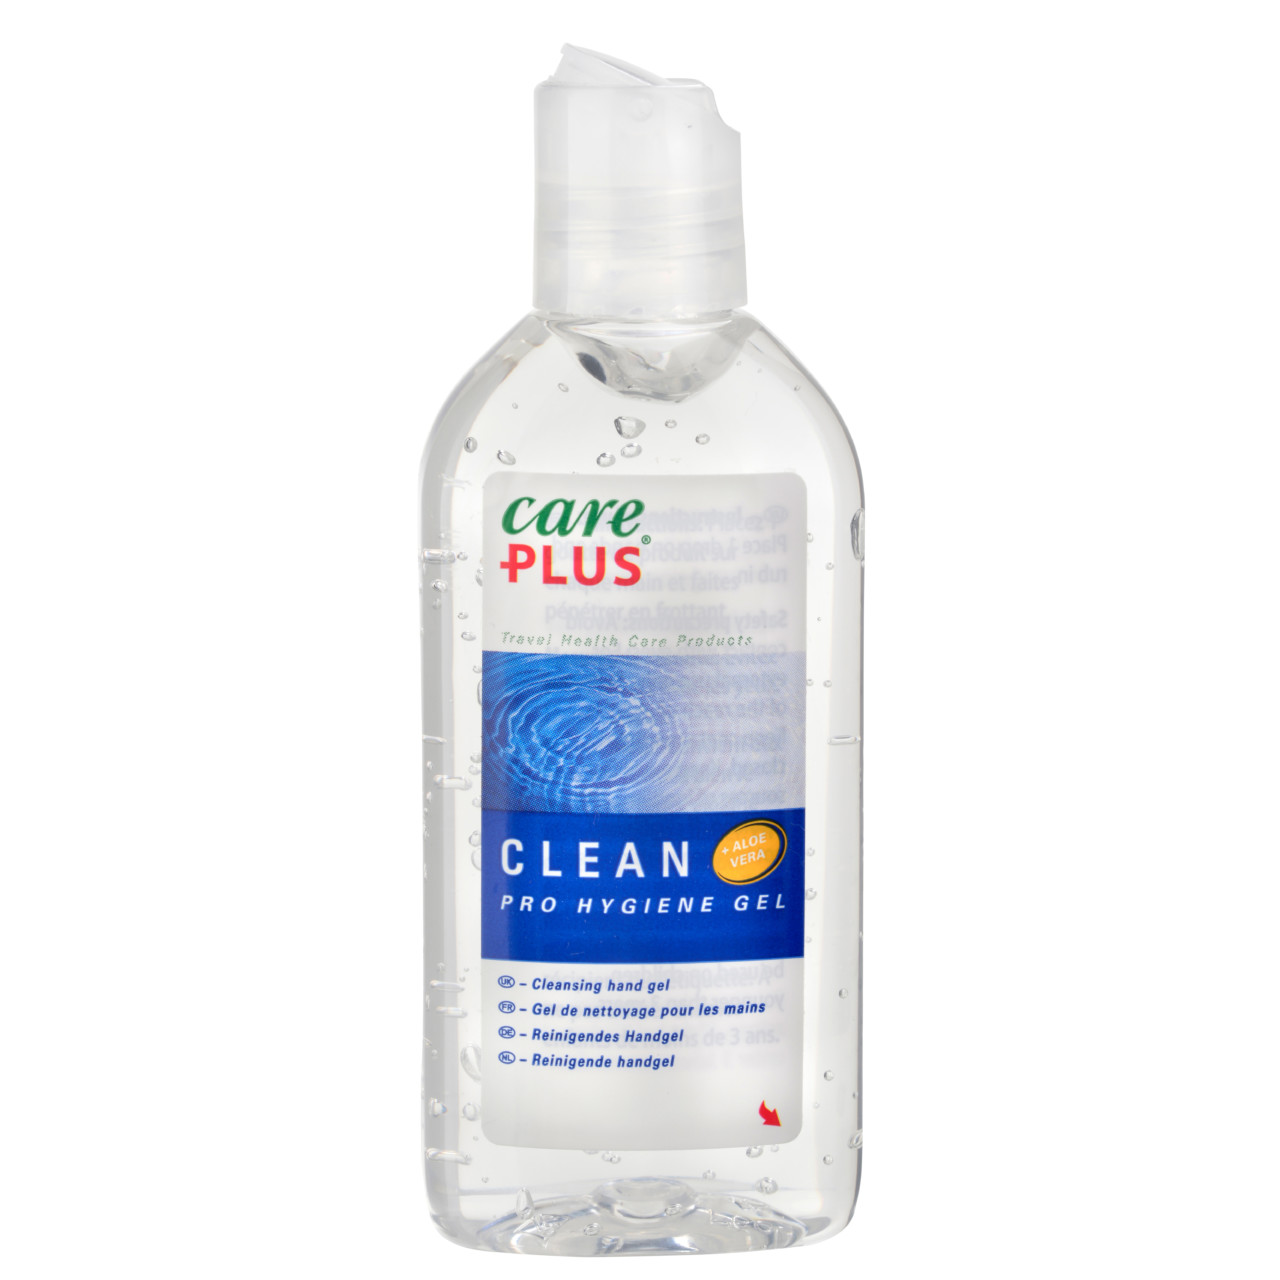 Care Plus Pro Hygiëne gel